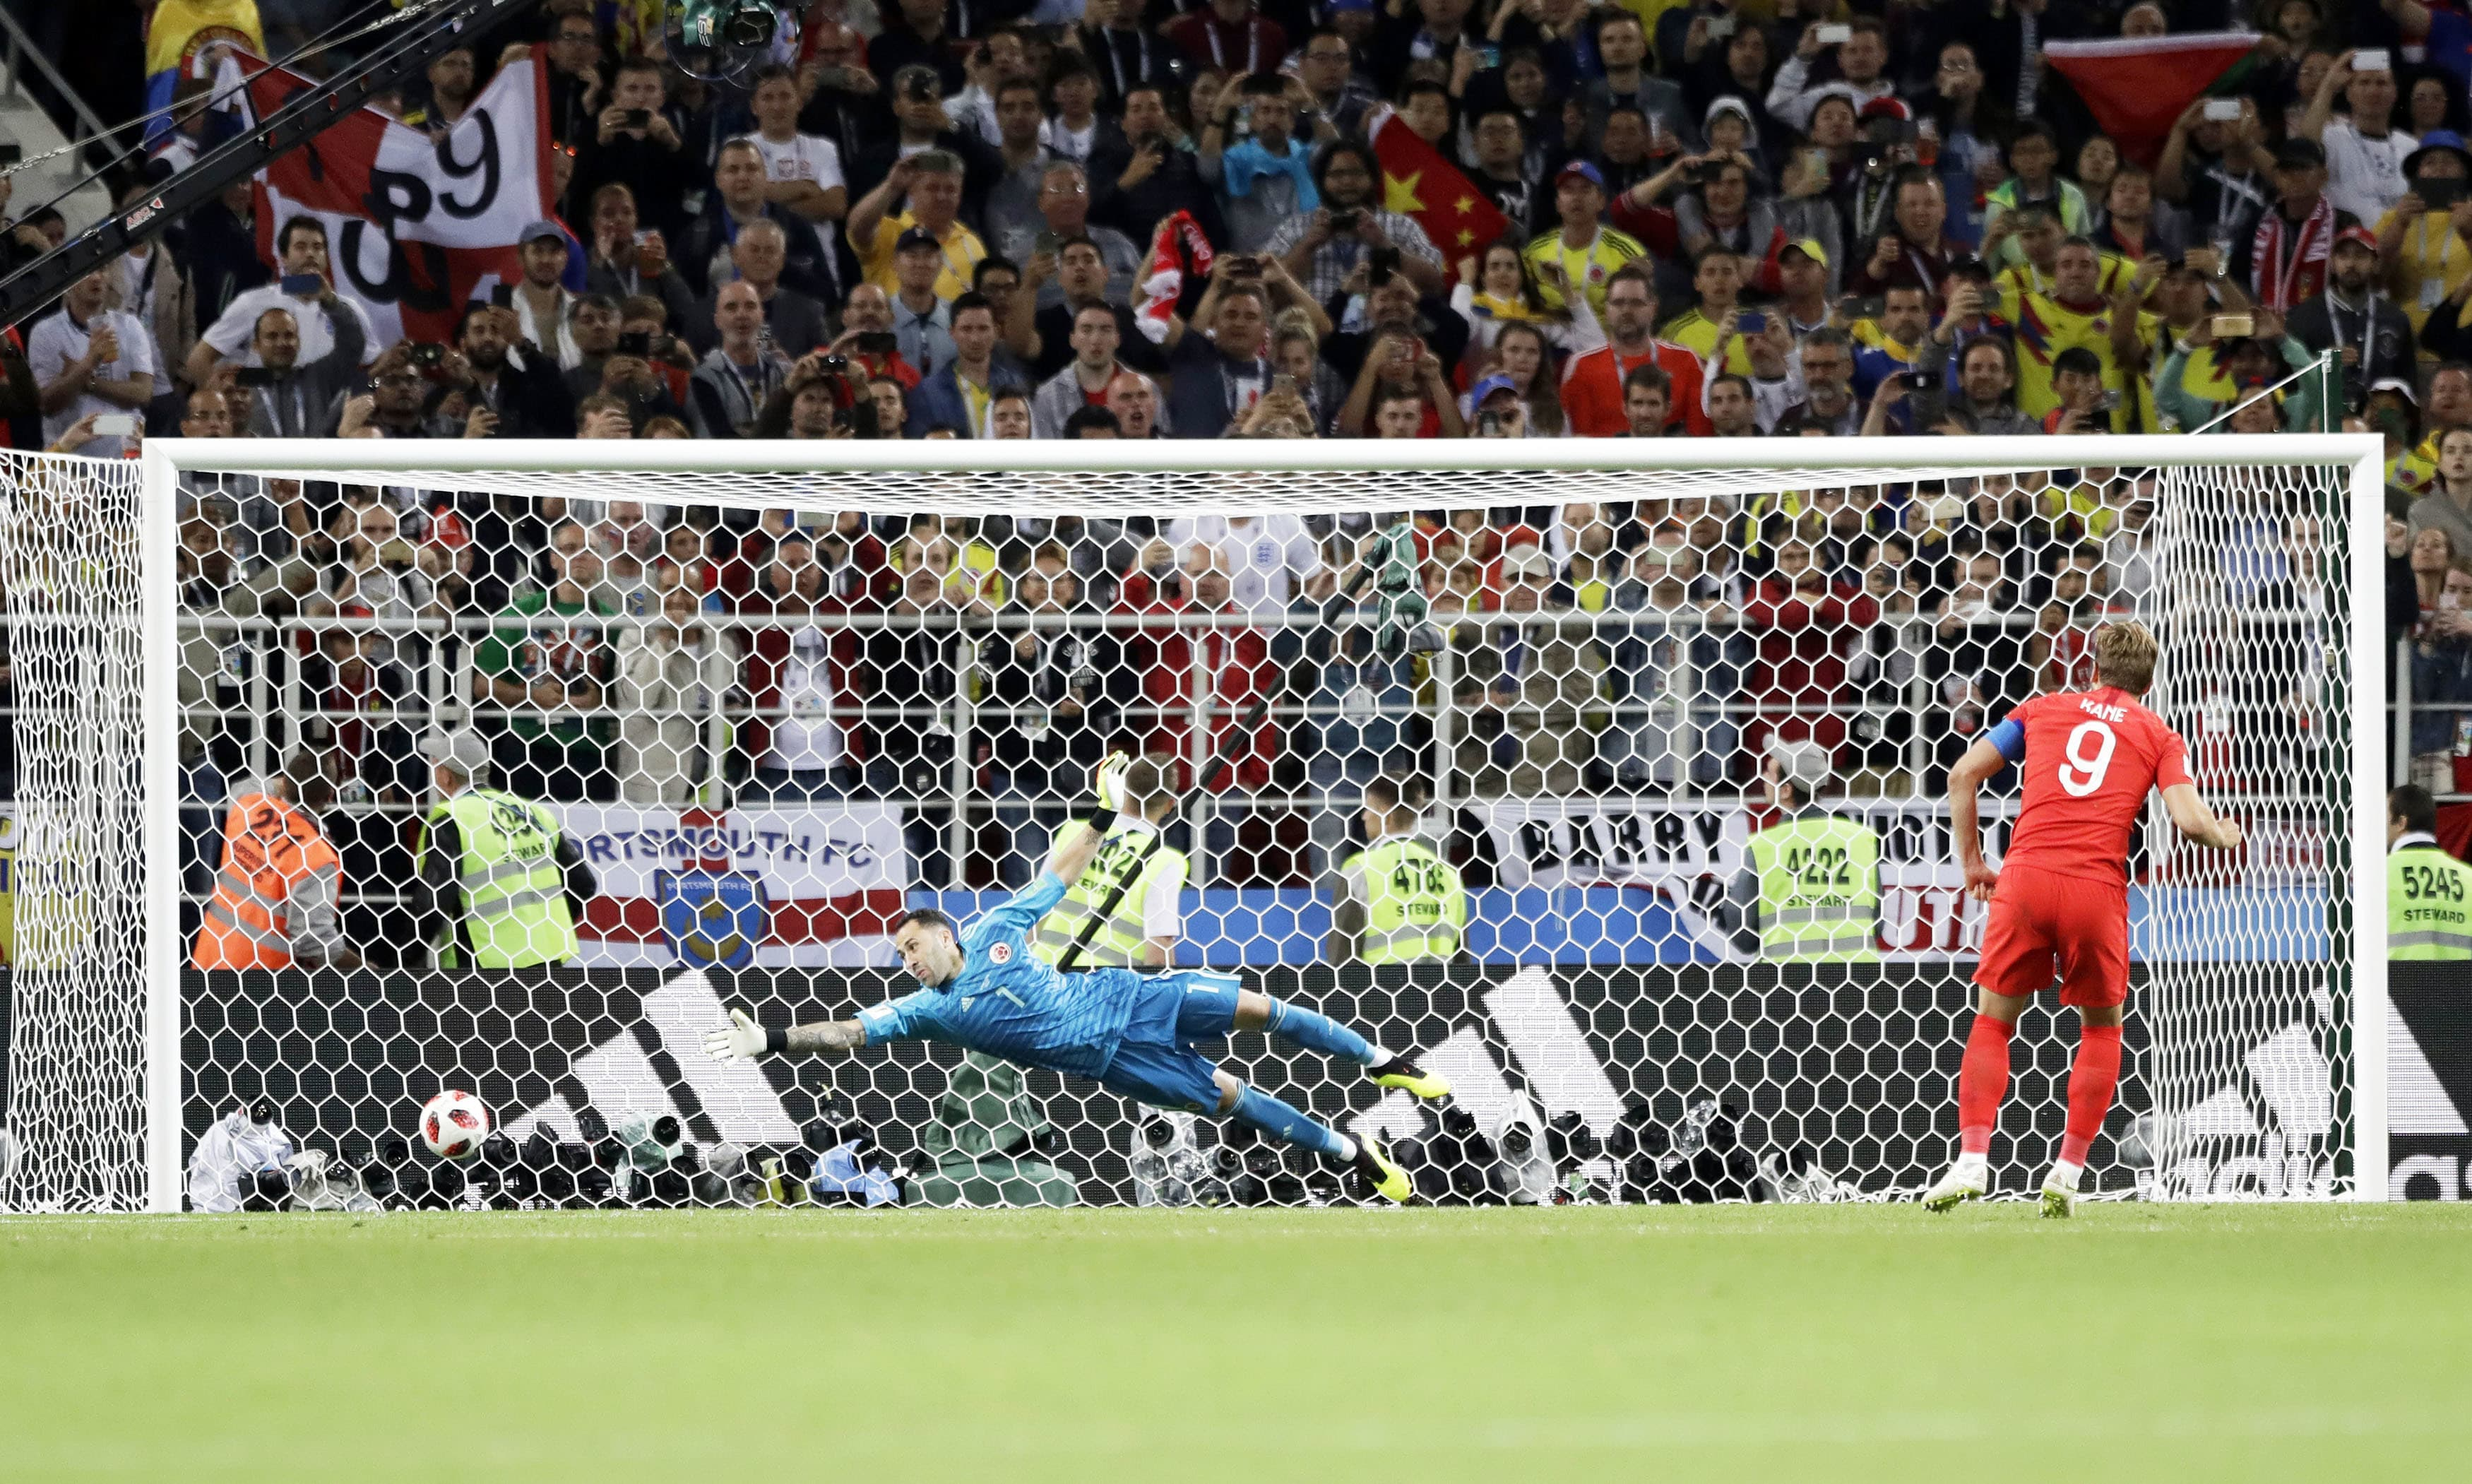 England's Harry Kane scores on a penalty shootout during the round of 16 match against Colombia. —AP